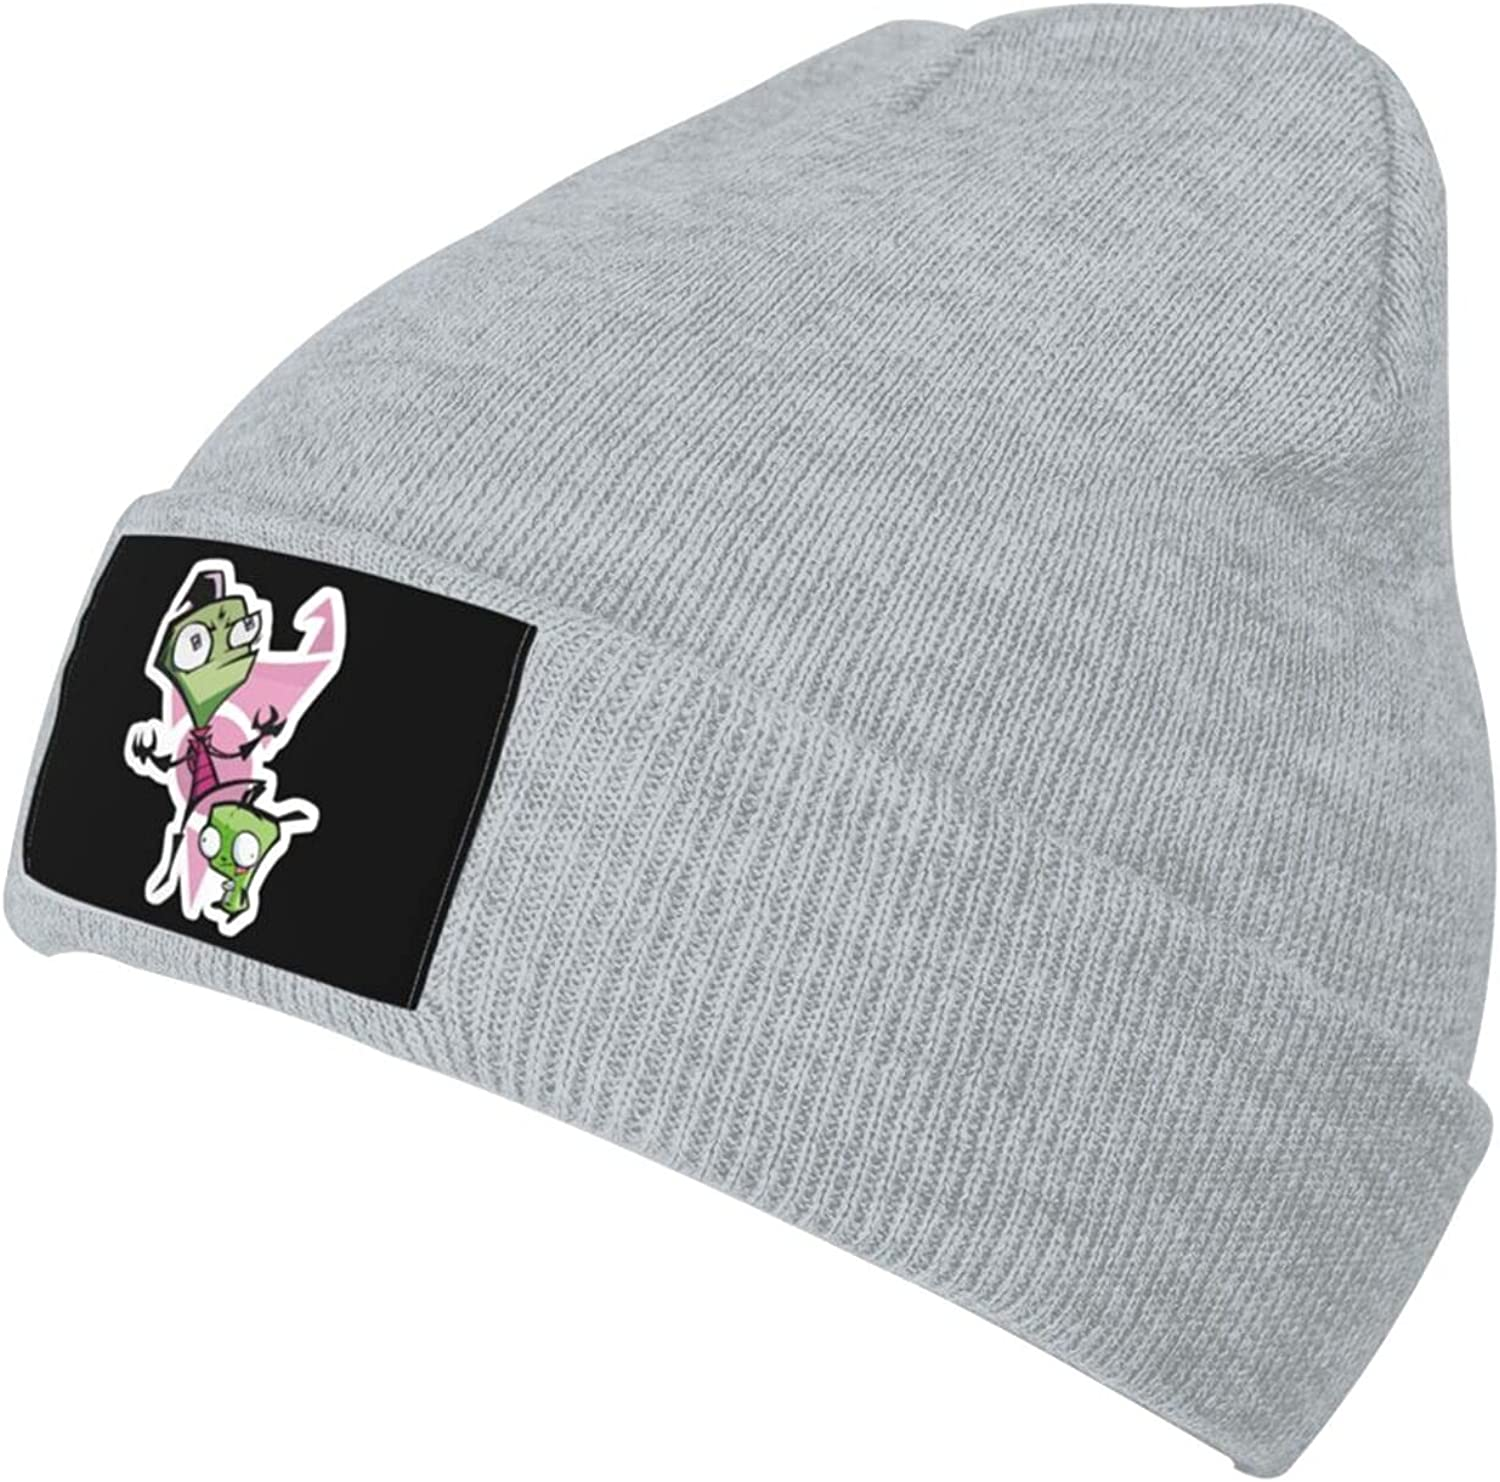 Ruporch Invader-Zim Knit New popularity Hat Beanie Cap fo Adult Hats In a popularity Unisex